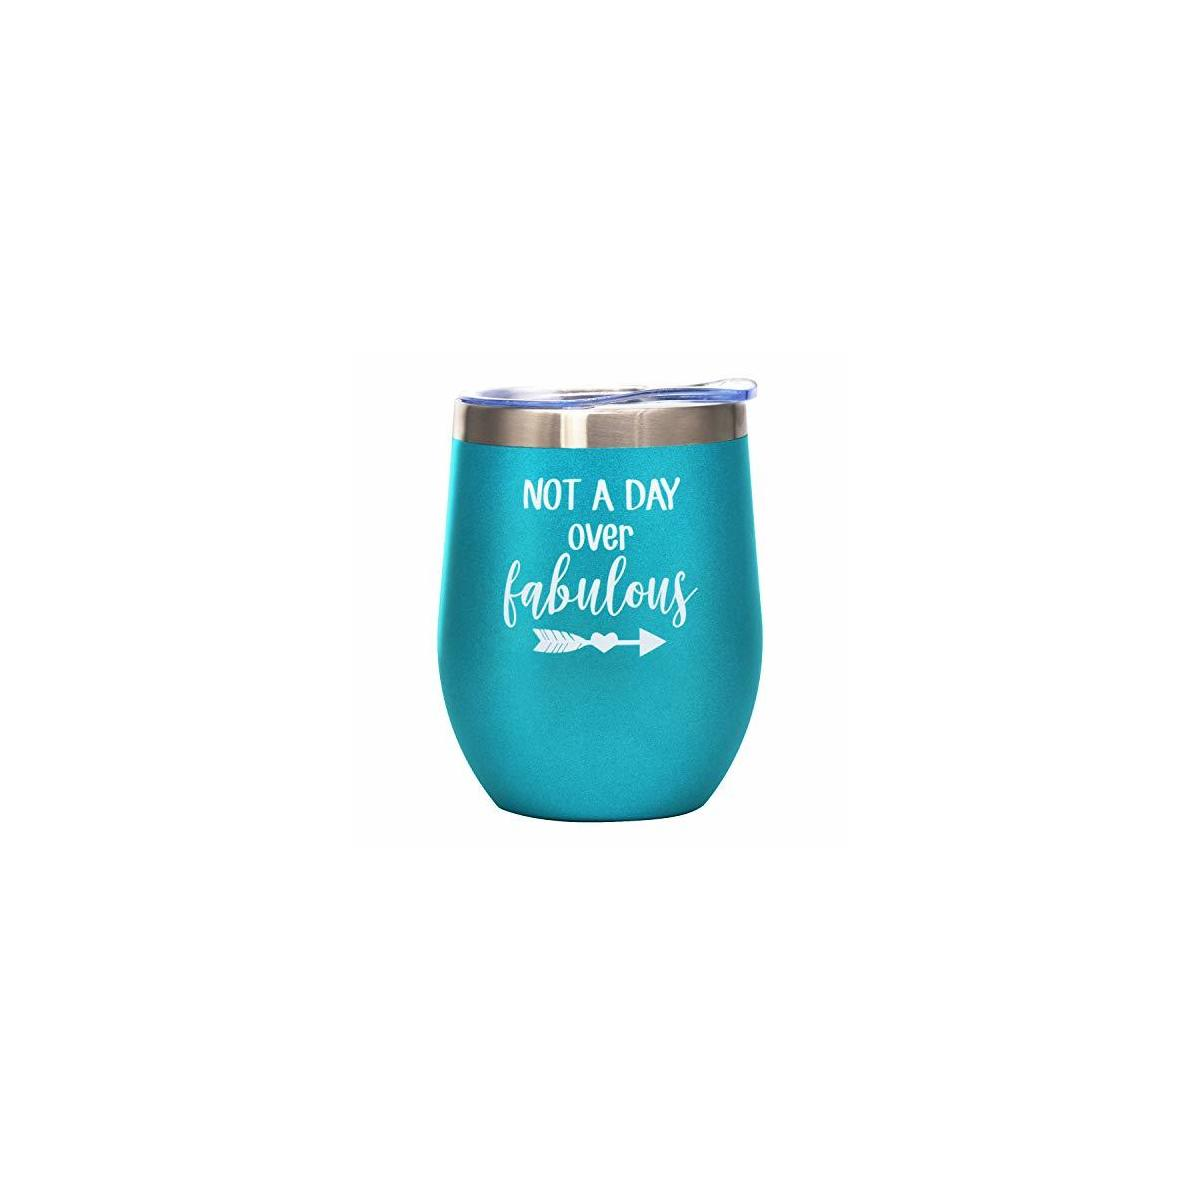 Not a Day Over Fabulous - Funny Birthday, Valentines Day Wine Gifts Ideas for Women, Mom, Grandma, Her, Wife, BFF, Best Friends, Daughter, Sister, Aunt, Girlfriend - 12oz Wine Tumbler Cup with Lid